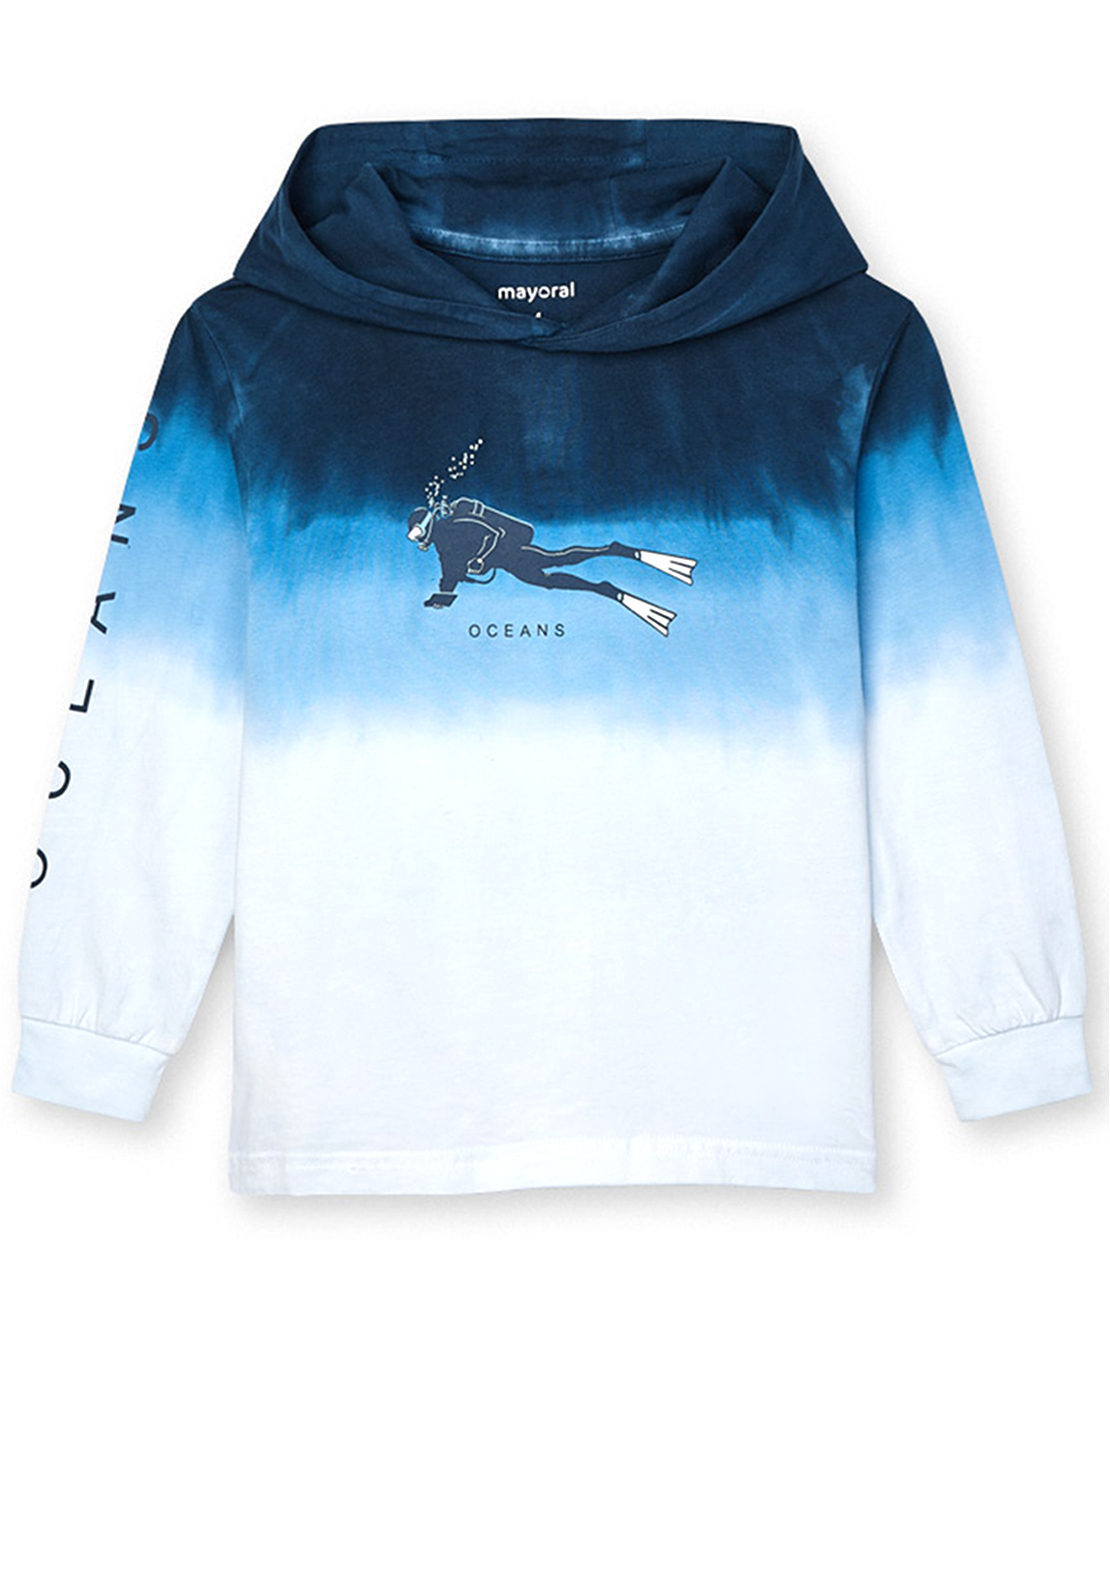 Mayoral Boys Tie Dye Hooded Top, Blue